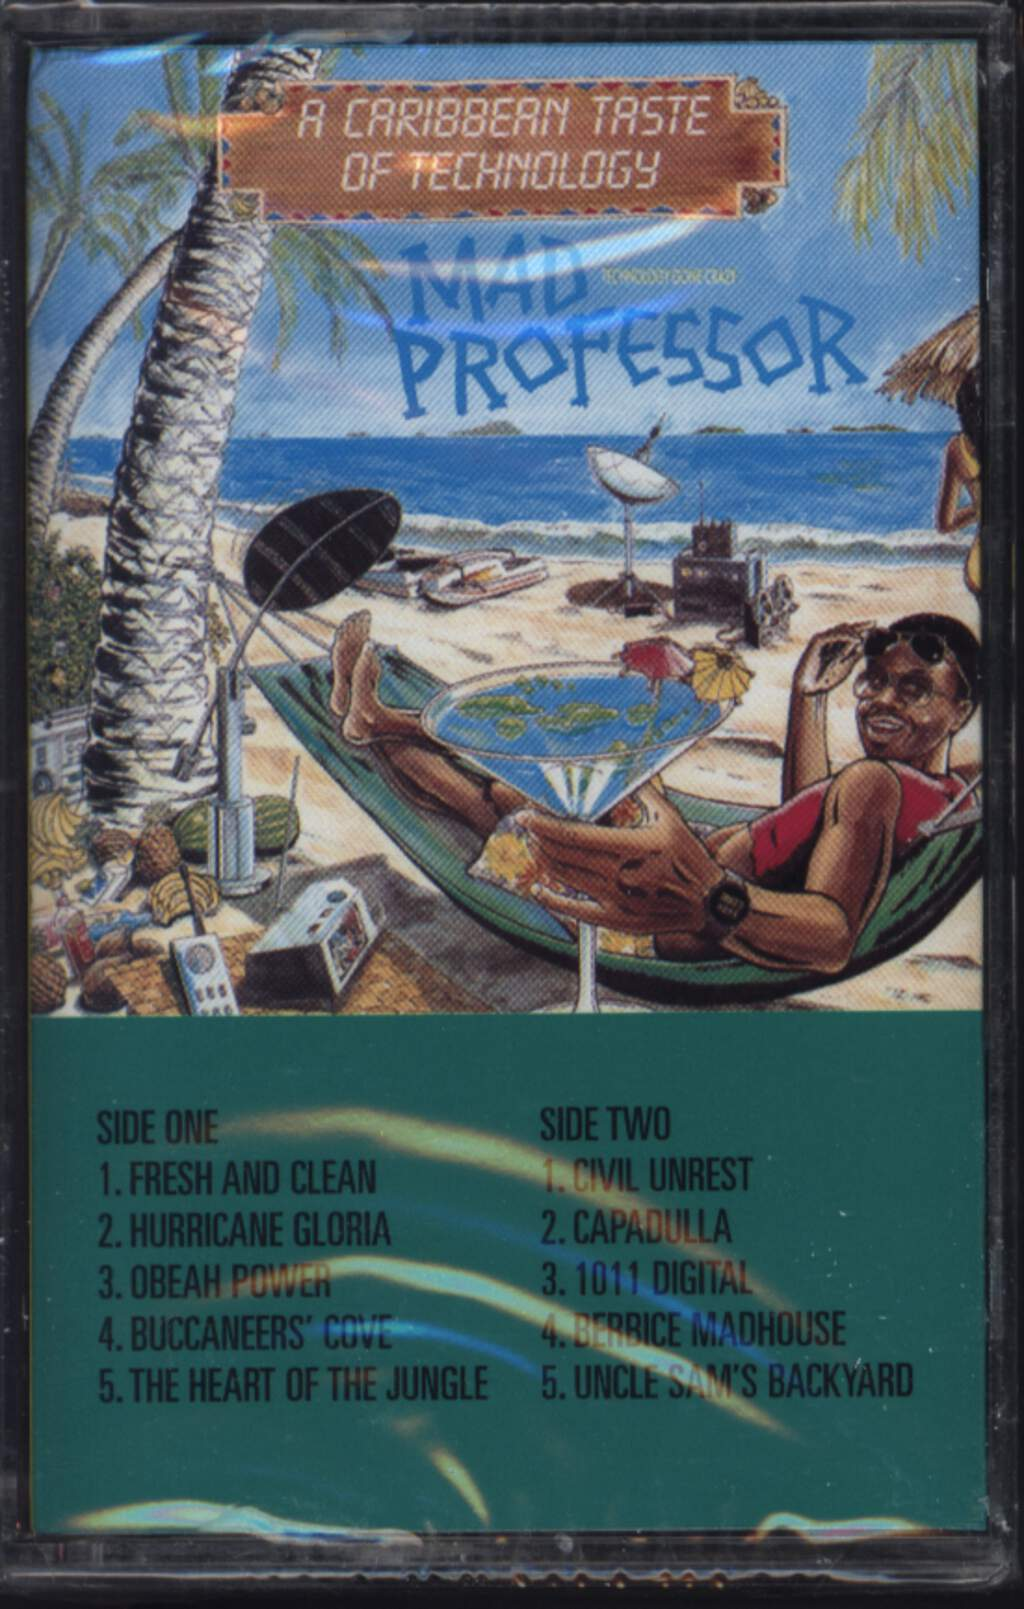 Mad Professor: A Caribbean Taste Of Technology, Compact Cassette